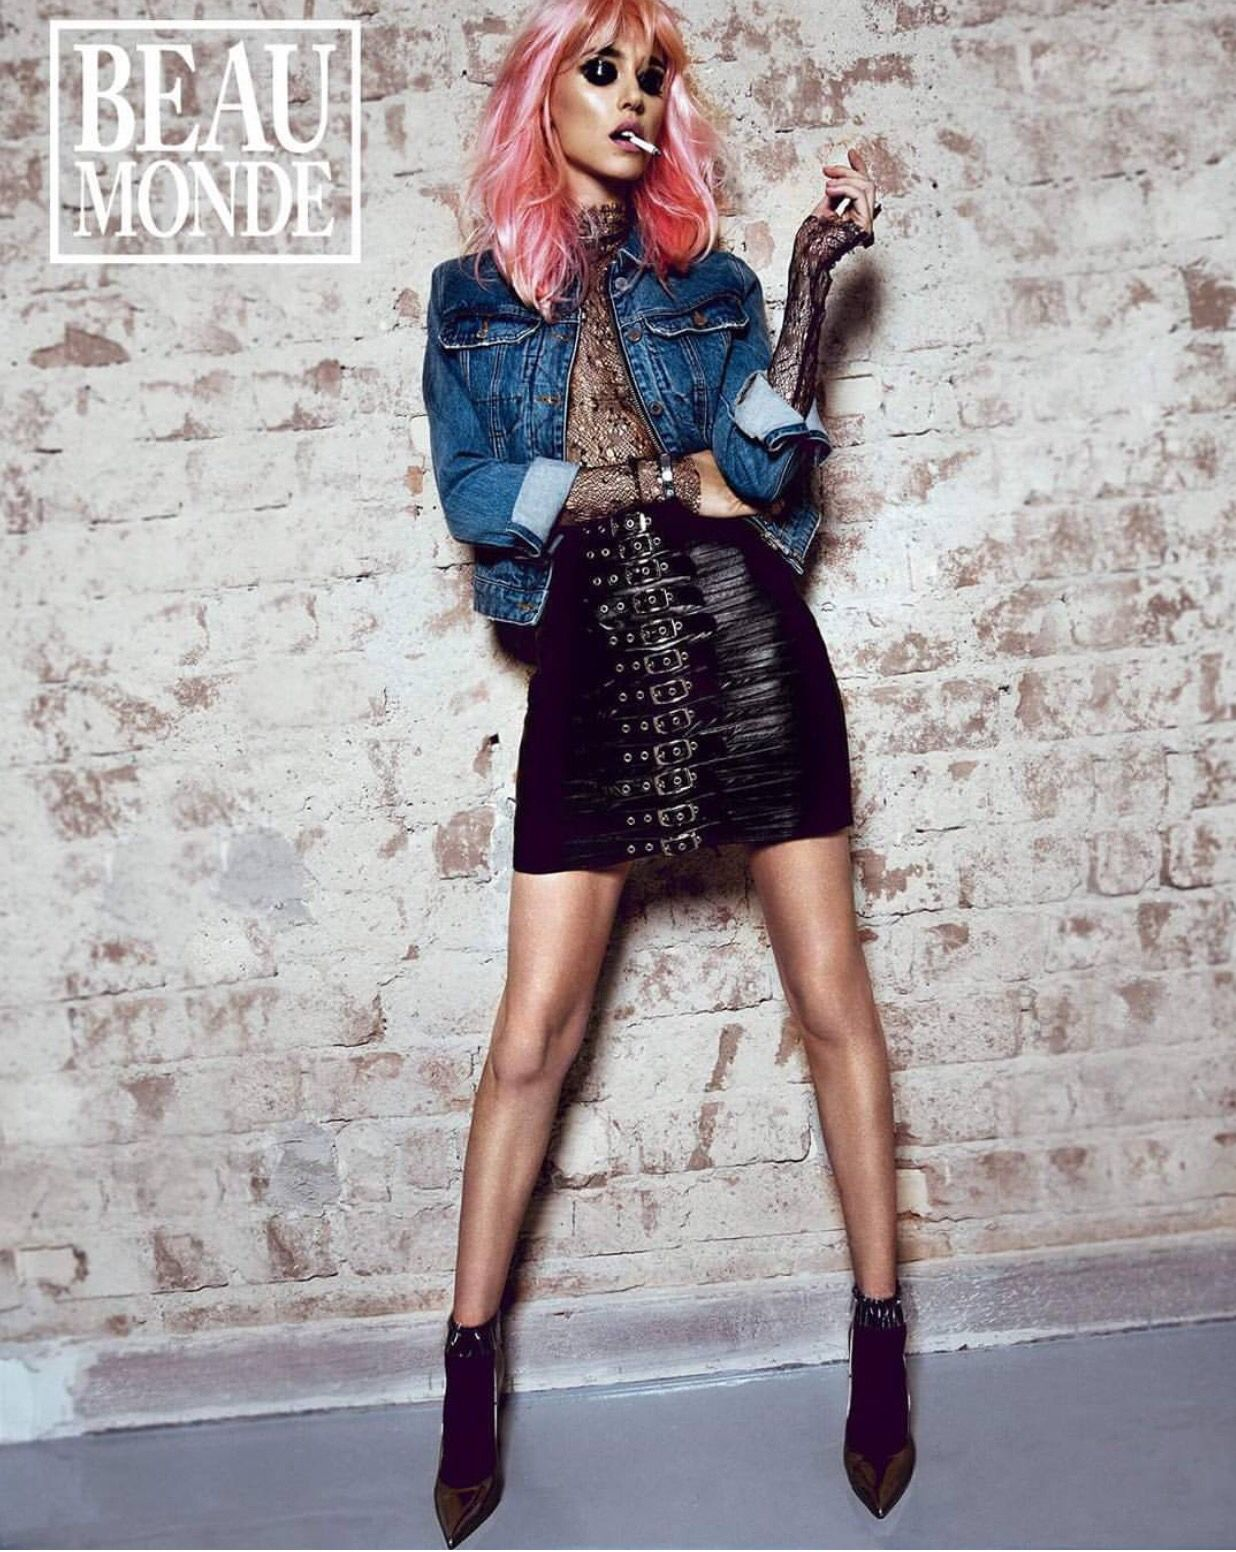 Our black crocodile embossed leather skirt was featured in the June issue of Beau Monde Magazine #Leather #LeatherSkirt #BeauMonde #Fashion #Magazine